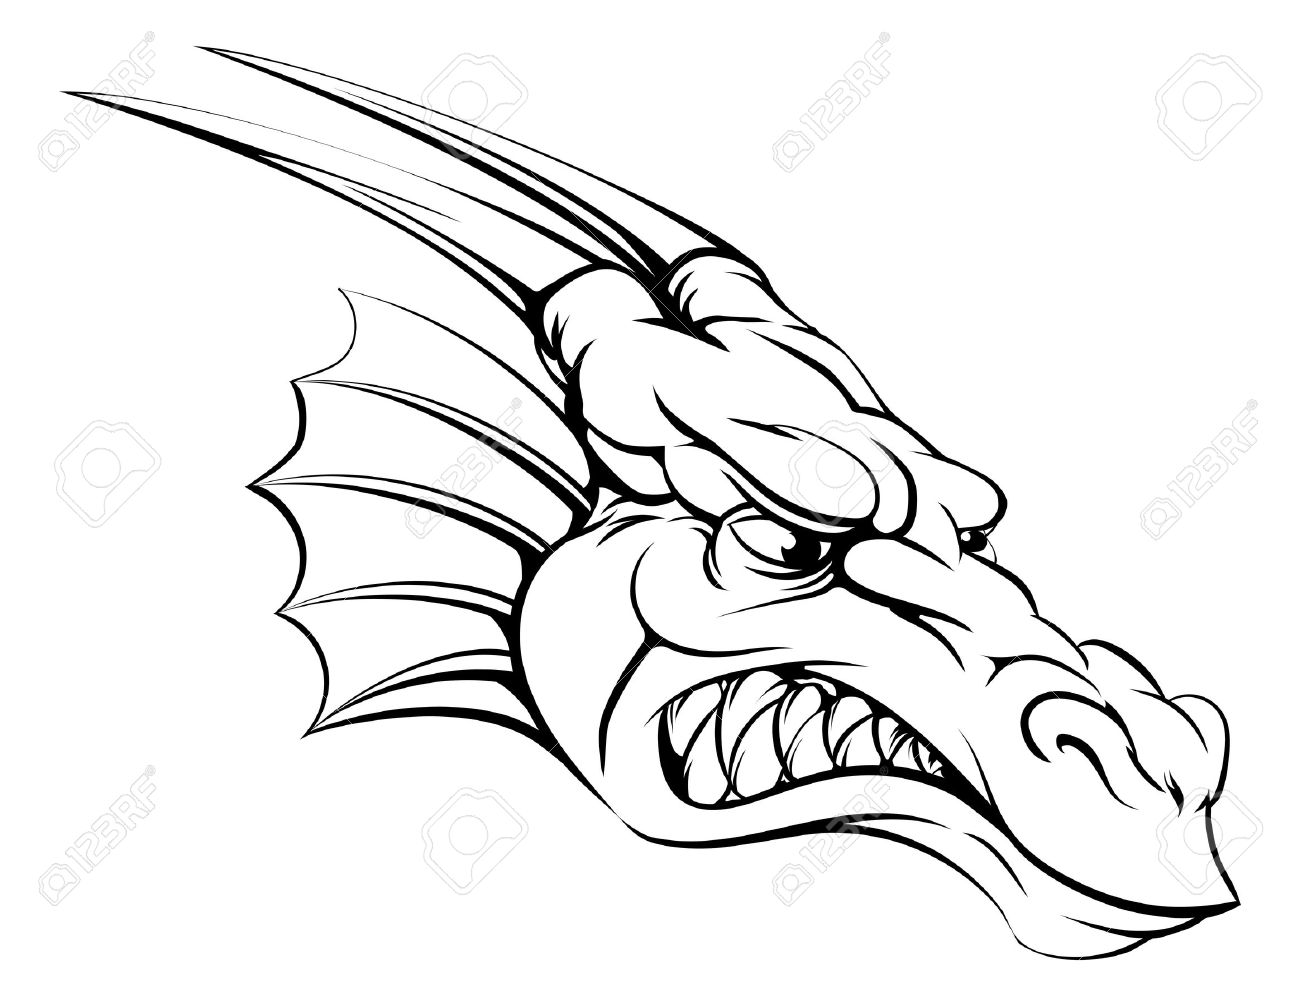 Dragon Images For Drawing